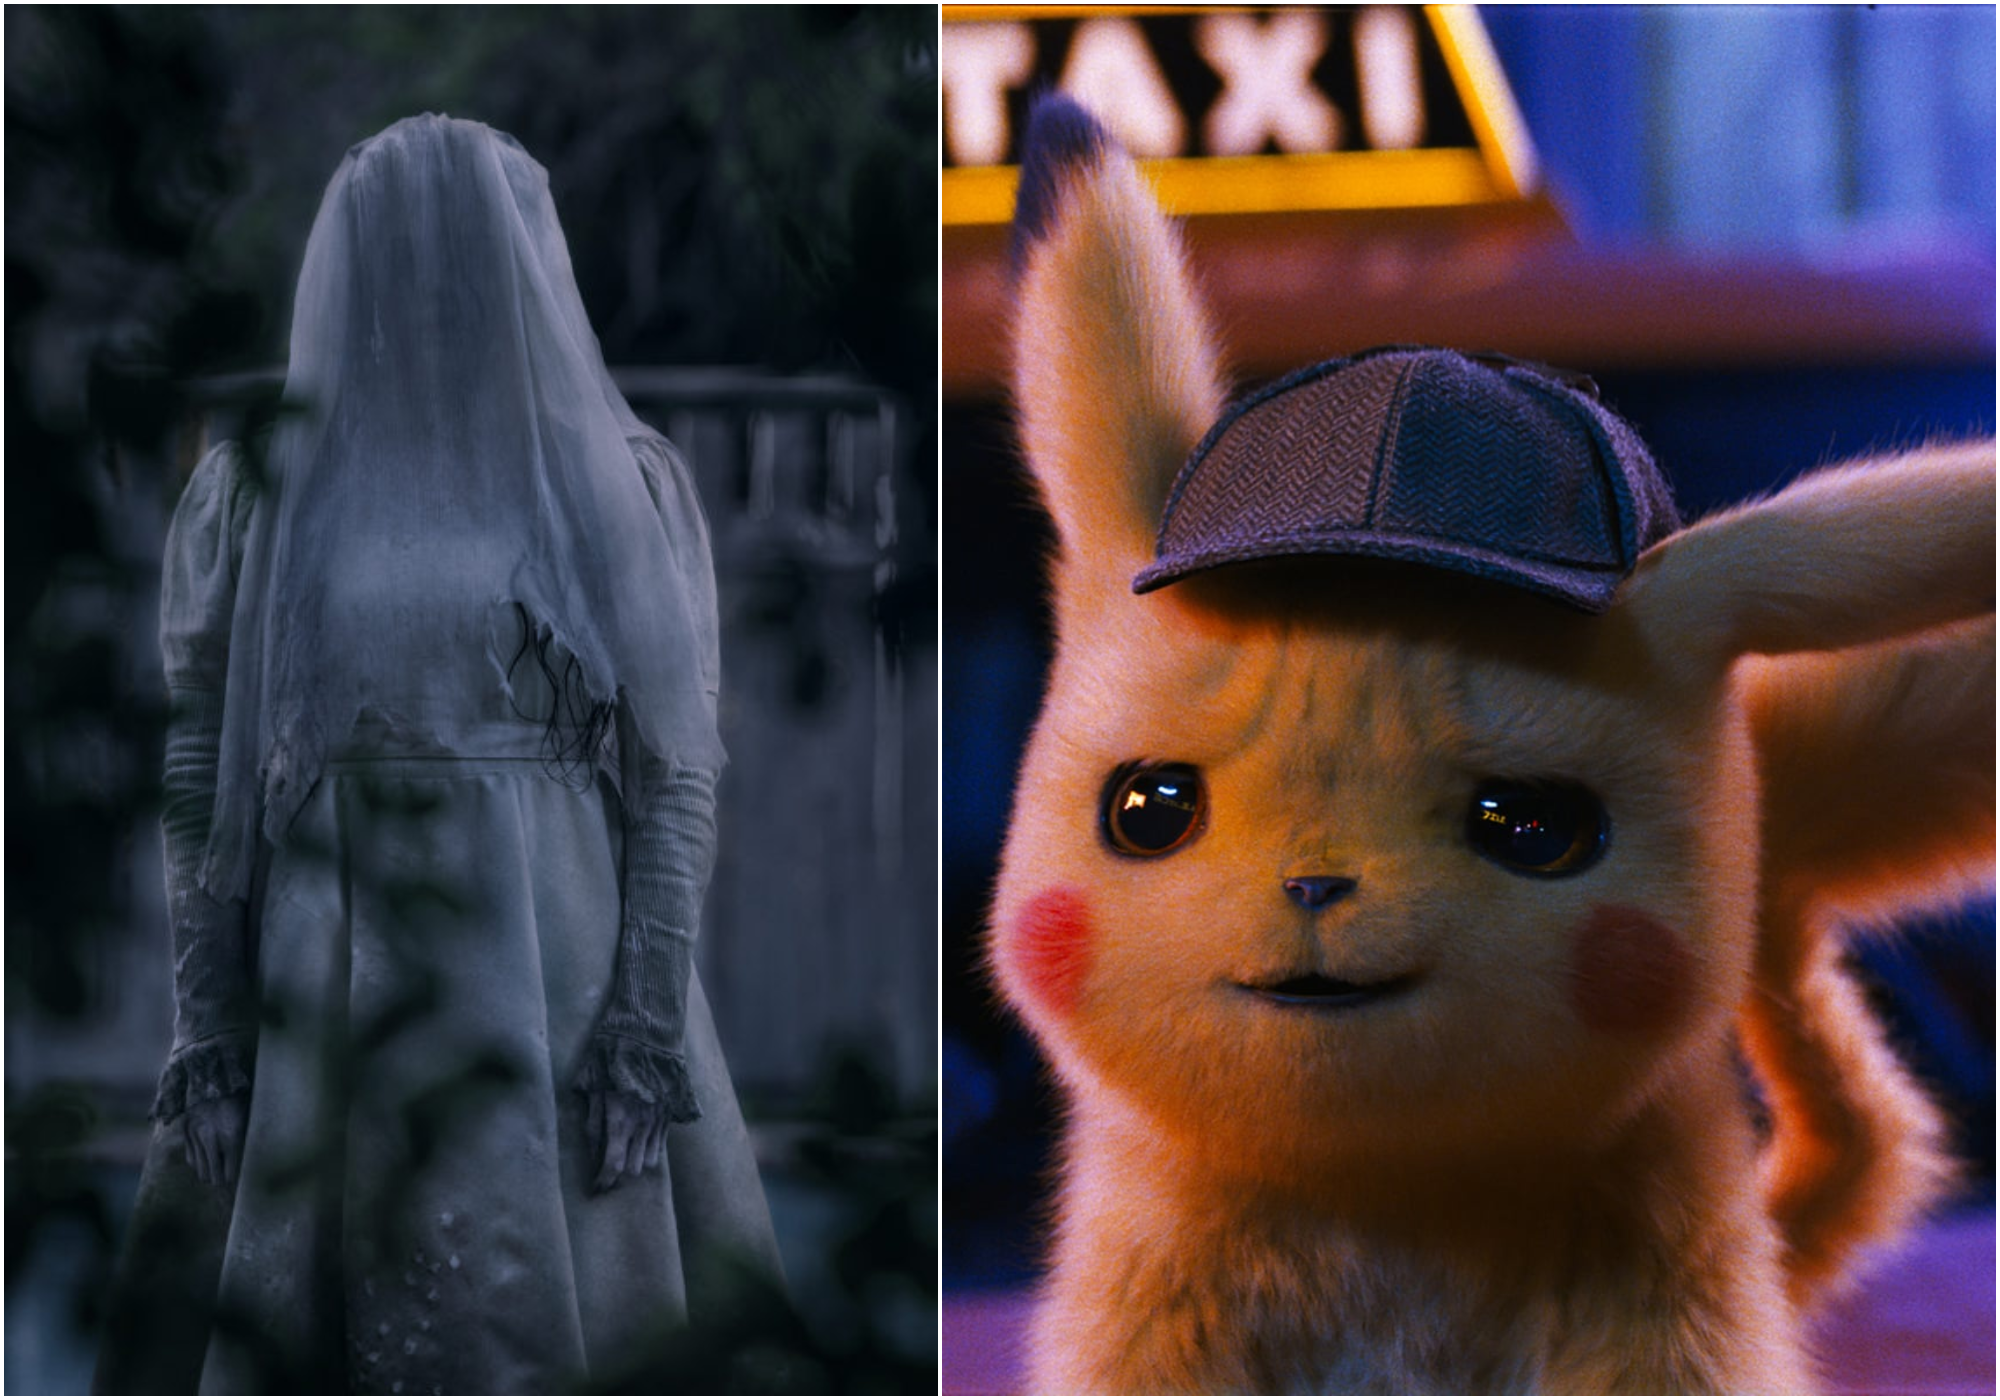 Movie Theater Traumatizes Children by Accidentally Playing 'La Llorona' Instead of 'Detective Pikachu'